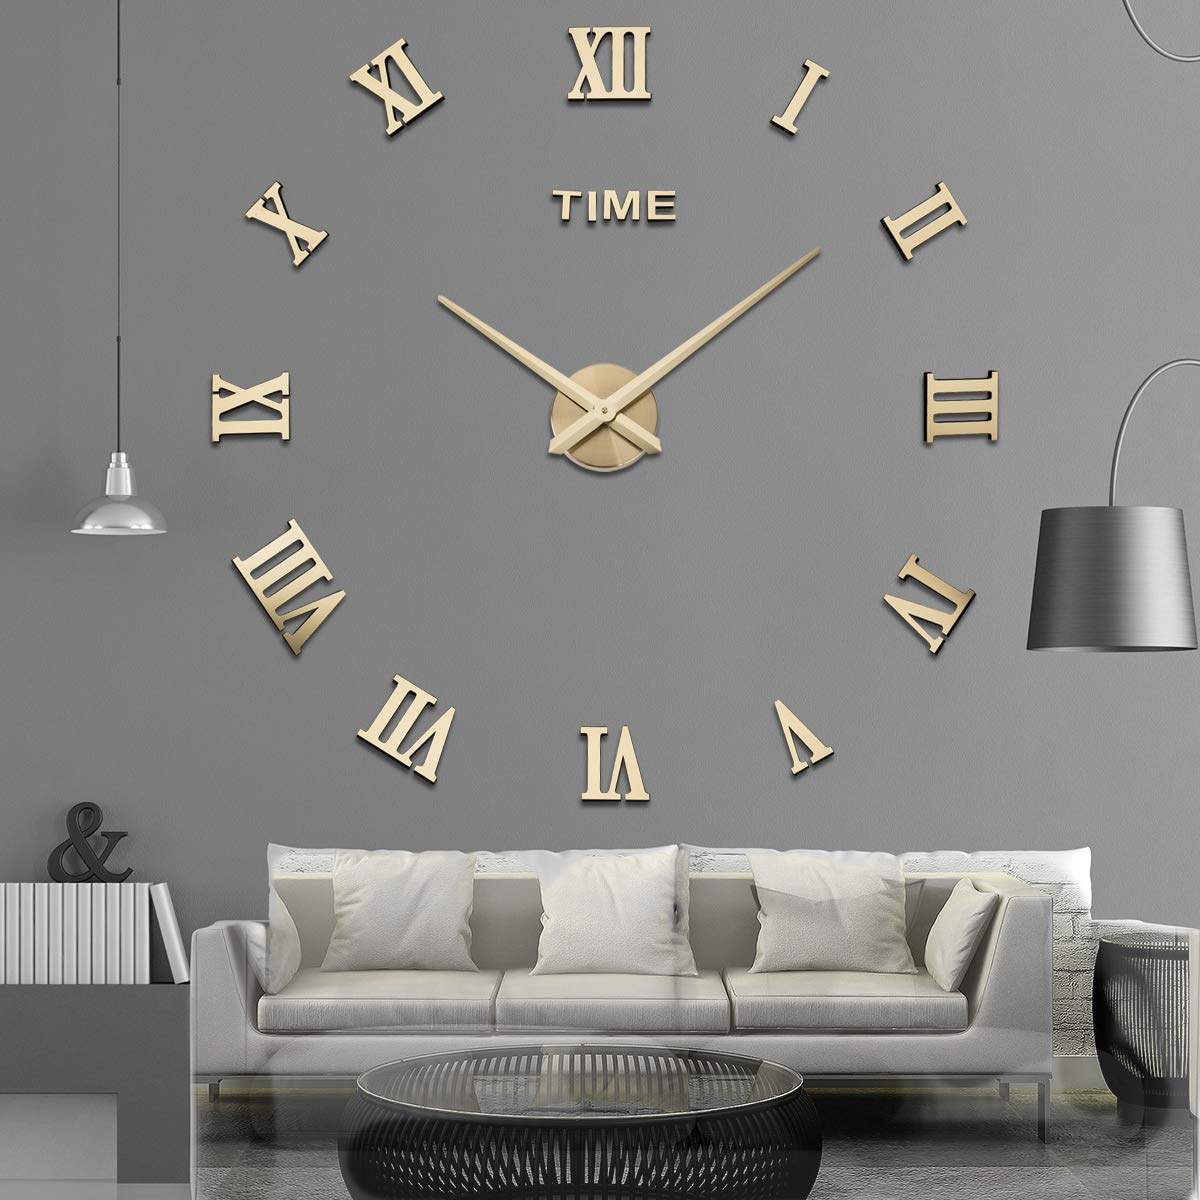 Amazon.com: Aililife 3D DIY Wall Clock Decor Sticker Mirror Frameless Large DIY Wall Clock Kit for Home Living Room Bedroom Office Decoration (Gold): Home & ...